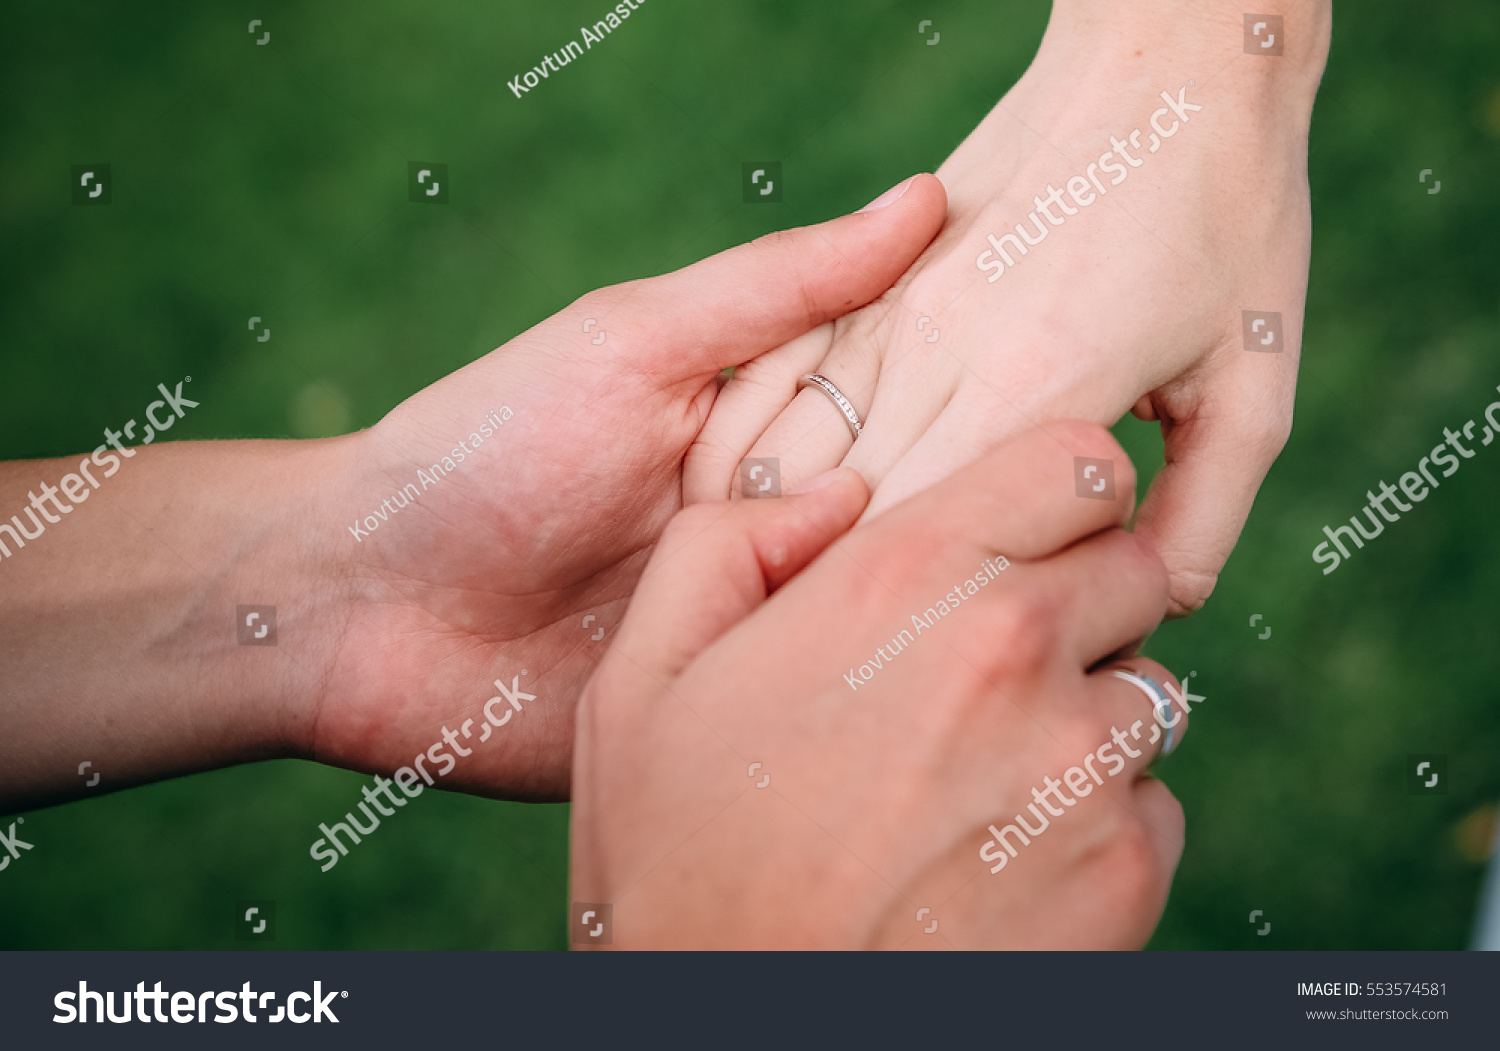 Wedding Rings Hands Men Women Stock Photo (Royalty Free) 553574581 ...